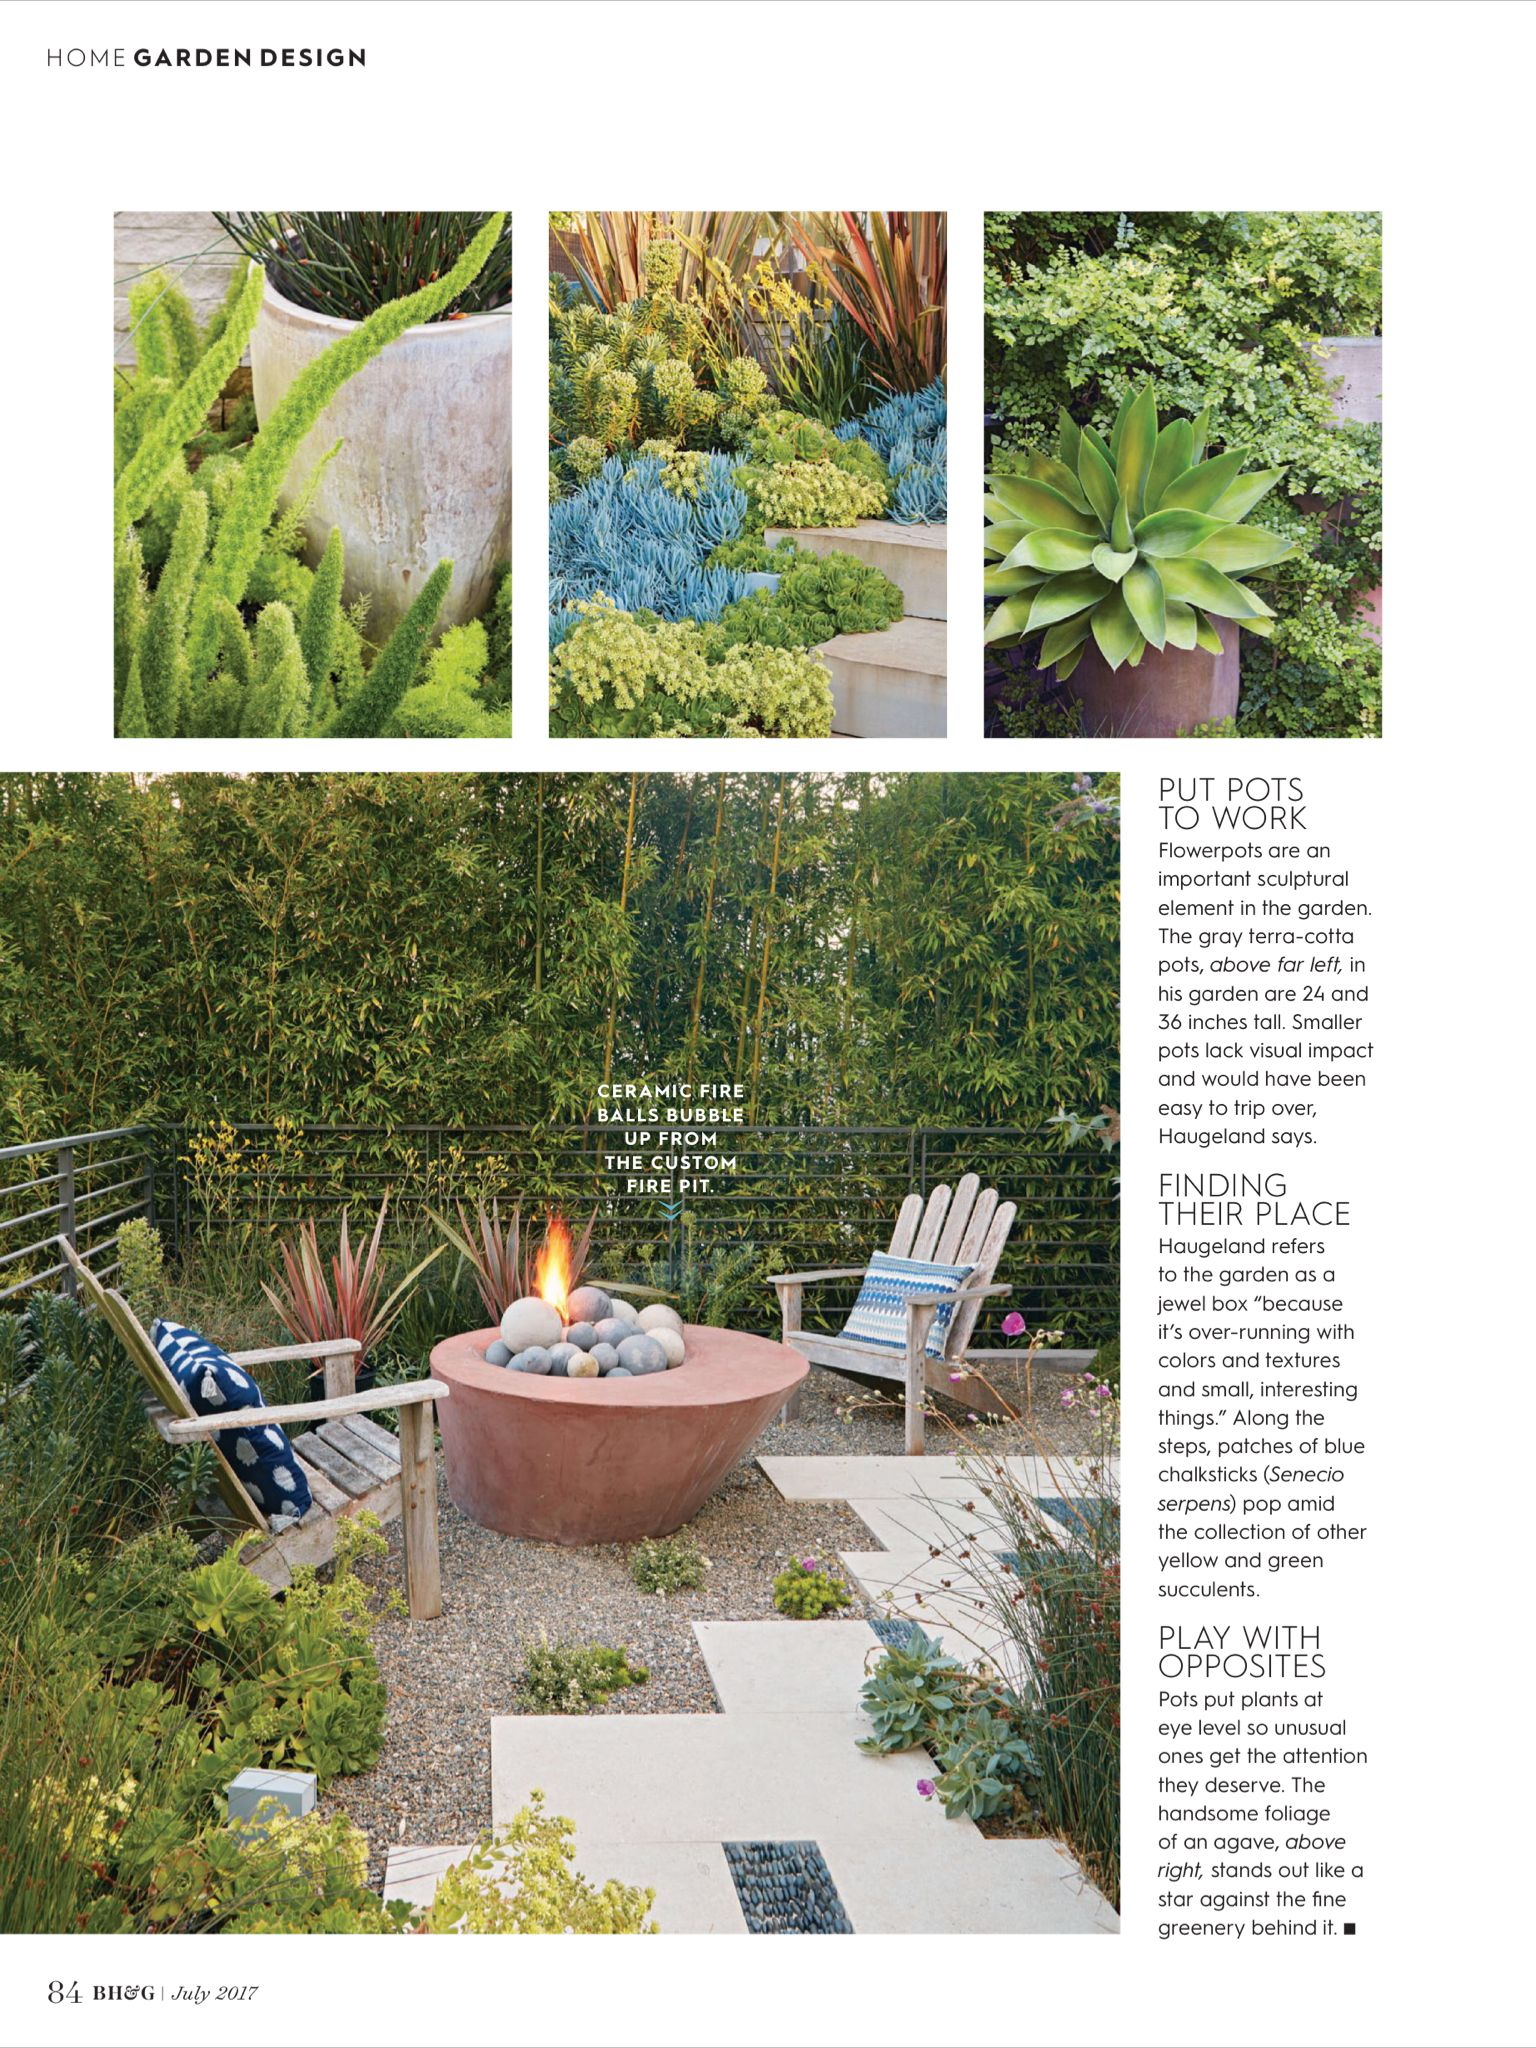 better homes and gardens landscape design.  Jewel Box Garden from Better Homes and Gardens July 2017 Read it